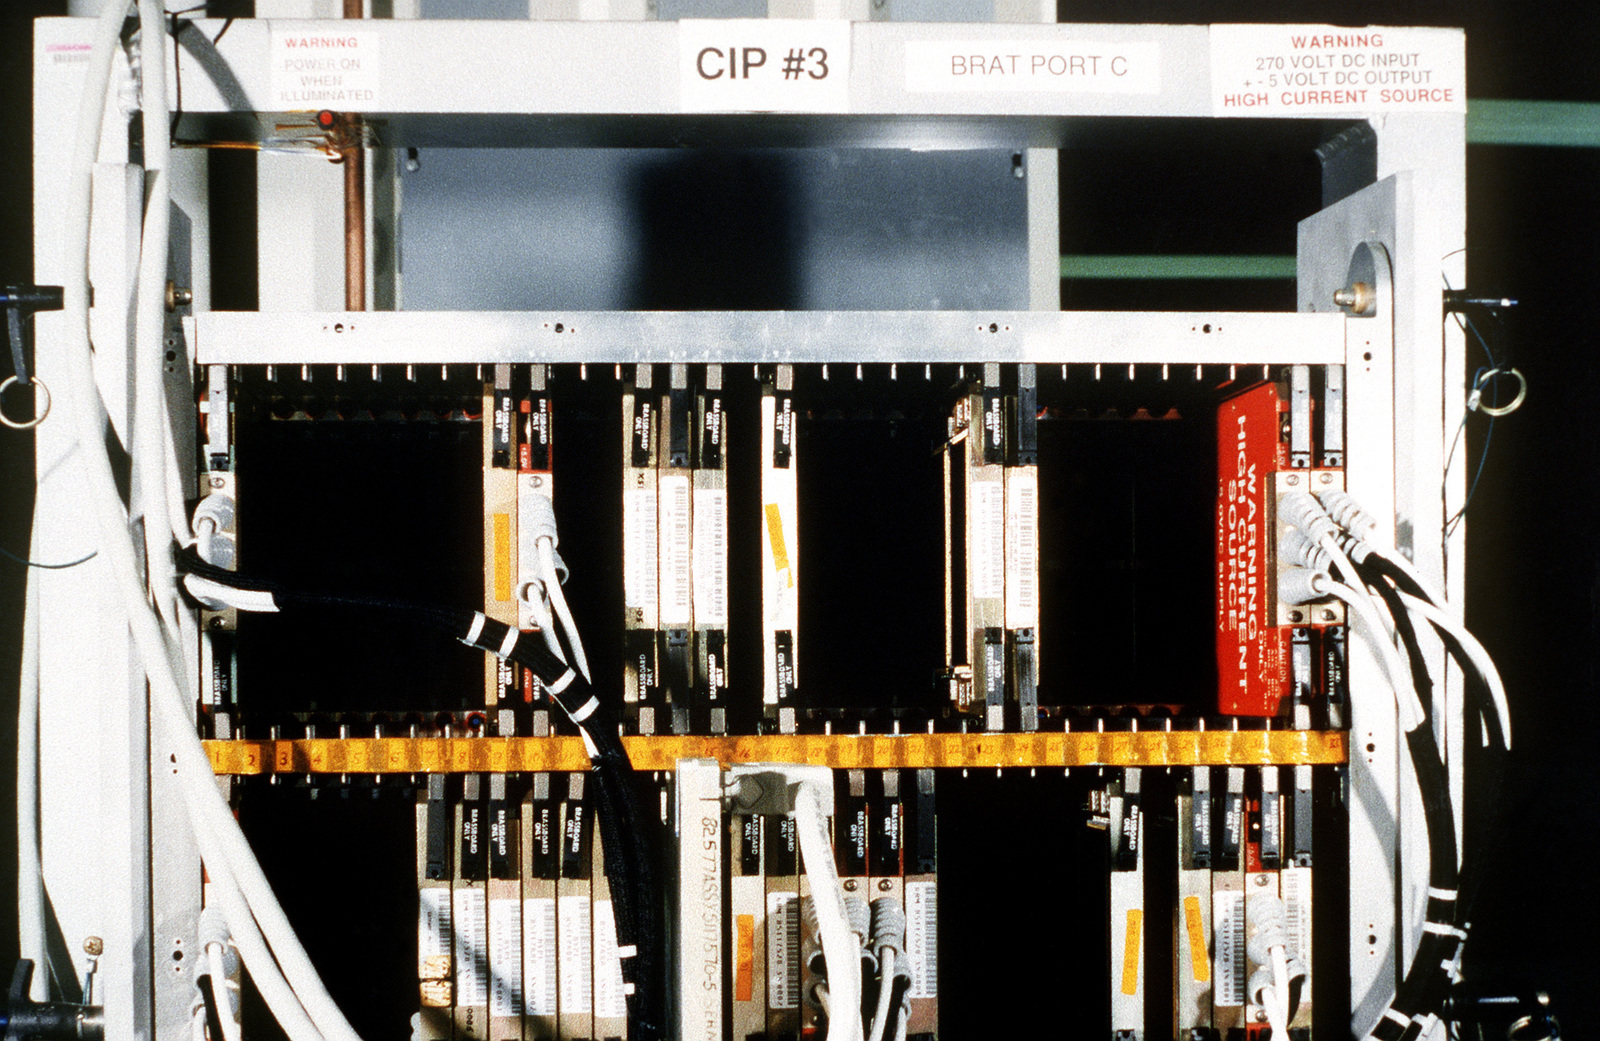 A close-up view of the Common Integrated Processor which was developed for the F-22 jet fighter and is the equivalent of two Cray supercomputers. The CIP is a little larger than a 20-in television. It is the world's most advanced, high-speed computer system for use on board a fighter aircraft